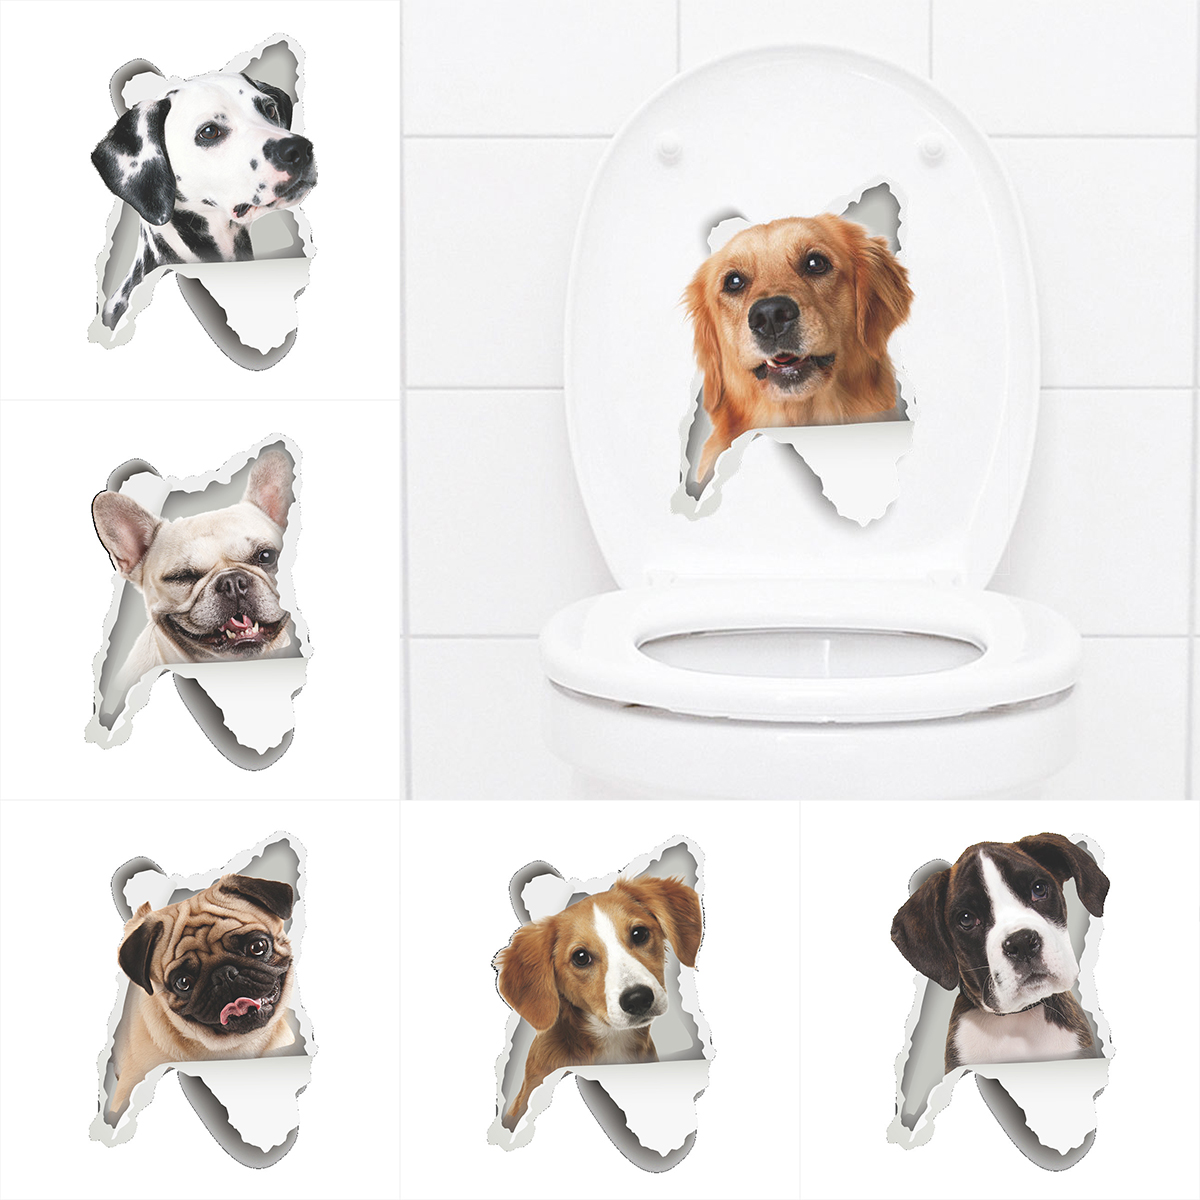 Us 082 25 Offcute 3d Wall Sticker Toilet Stickers Hole View Vivid Dogs Bathroom Home Decoration Animal Vinyl Decals Art Sticker Wall Poster In